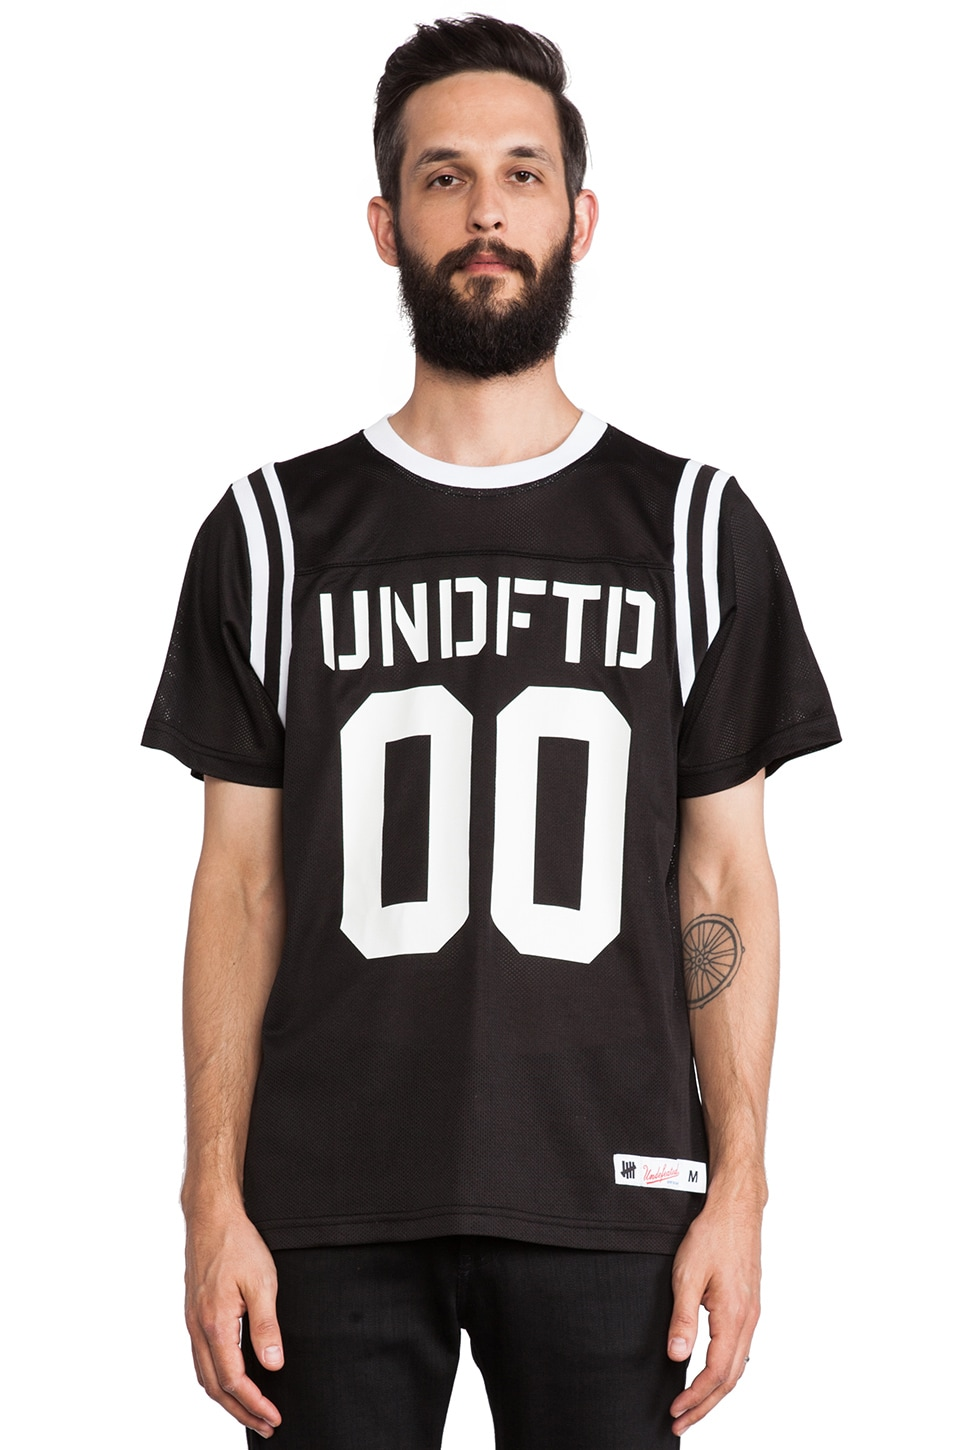 Undefeated 00 Mesh Football Tee in Black